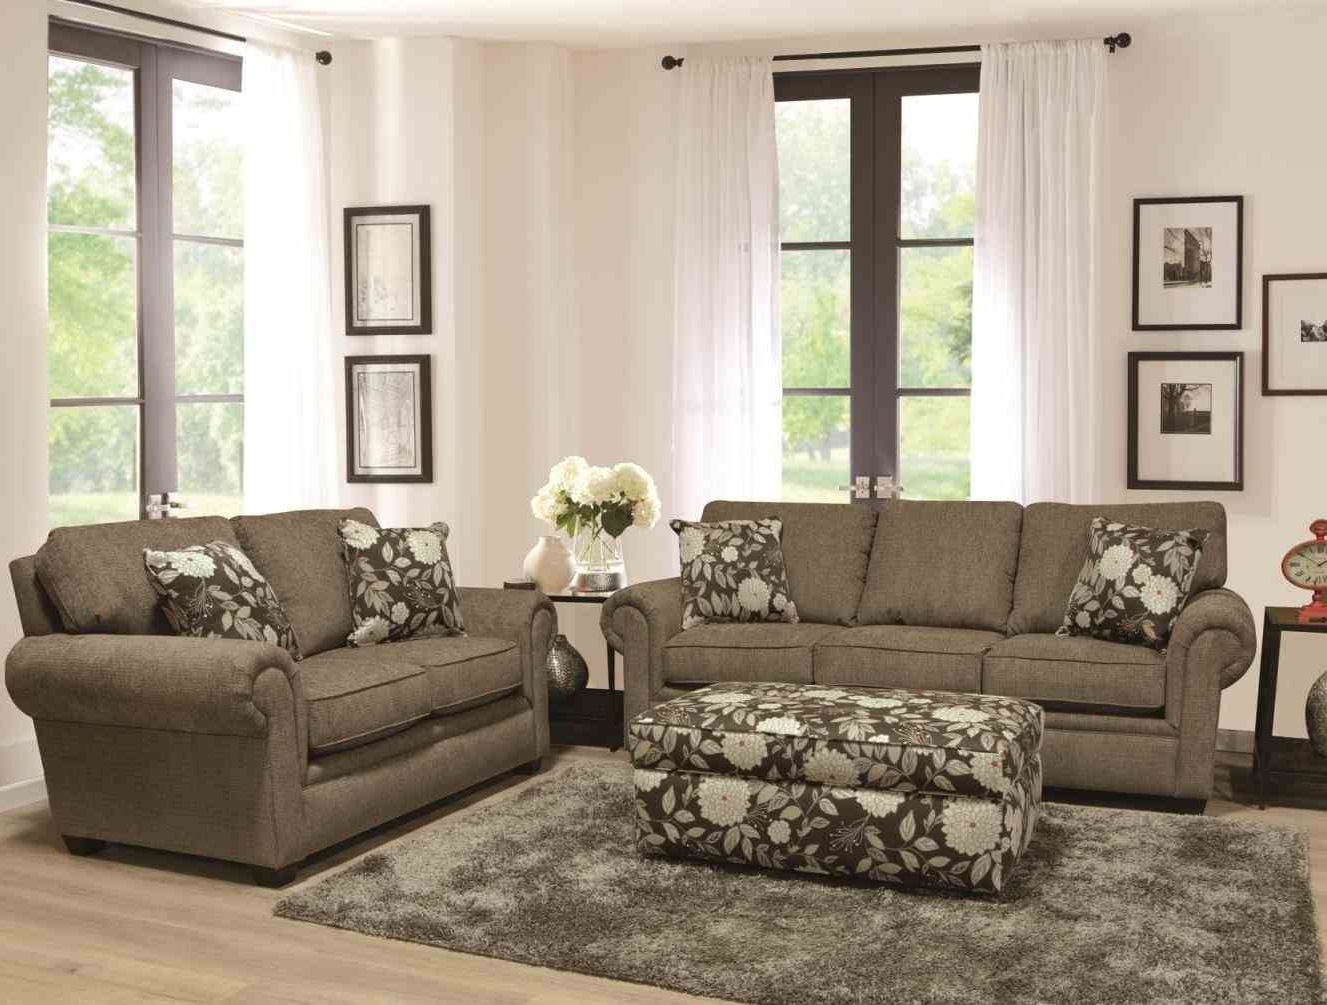 2018 Des Moines Ia Sectional Sofas Regarding Justin Salem Meyer Des Moines Iowa Wedding And Fabric Sectional (View 1 of 20)